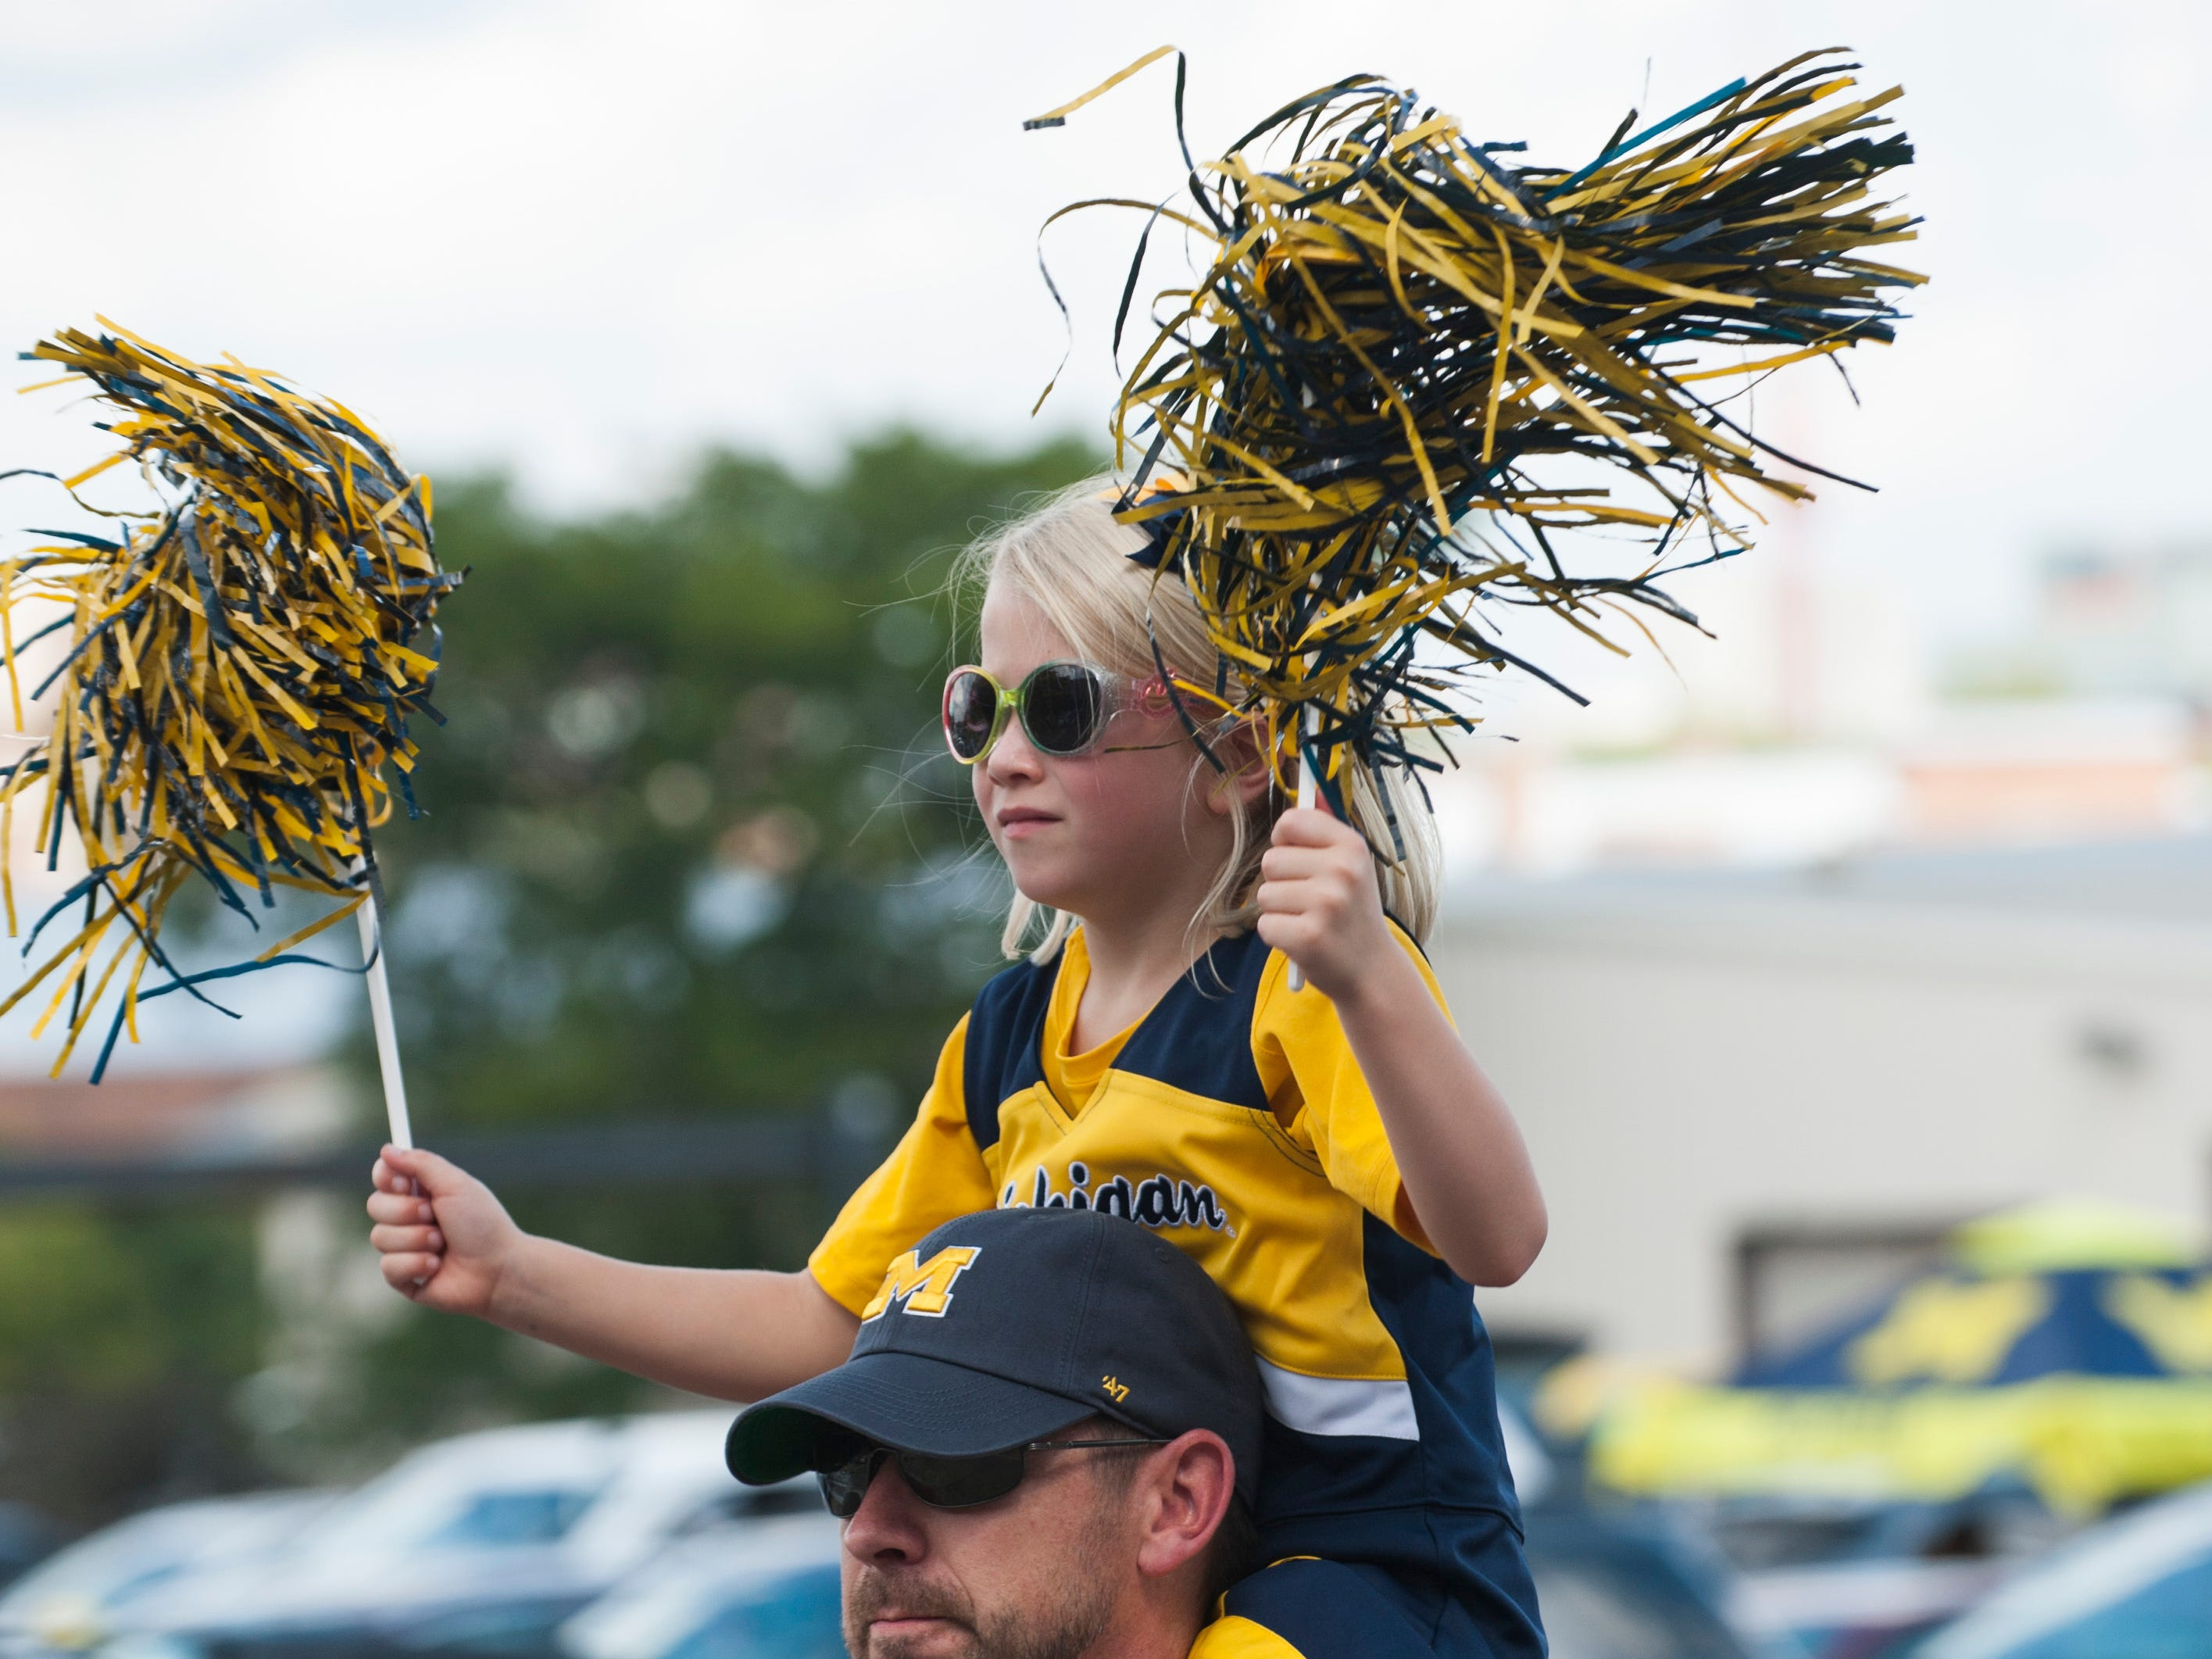 Six-year-old Lilly Neboyskey of Temperance, Mich. waves her maize and blue pom poms while riding atop her father Stefan Neboyskey's shoulders as they arrive at Michigan Stadium before the game.